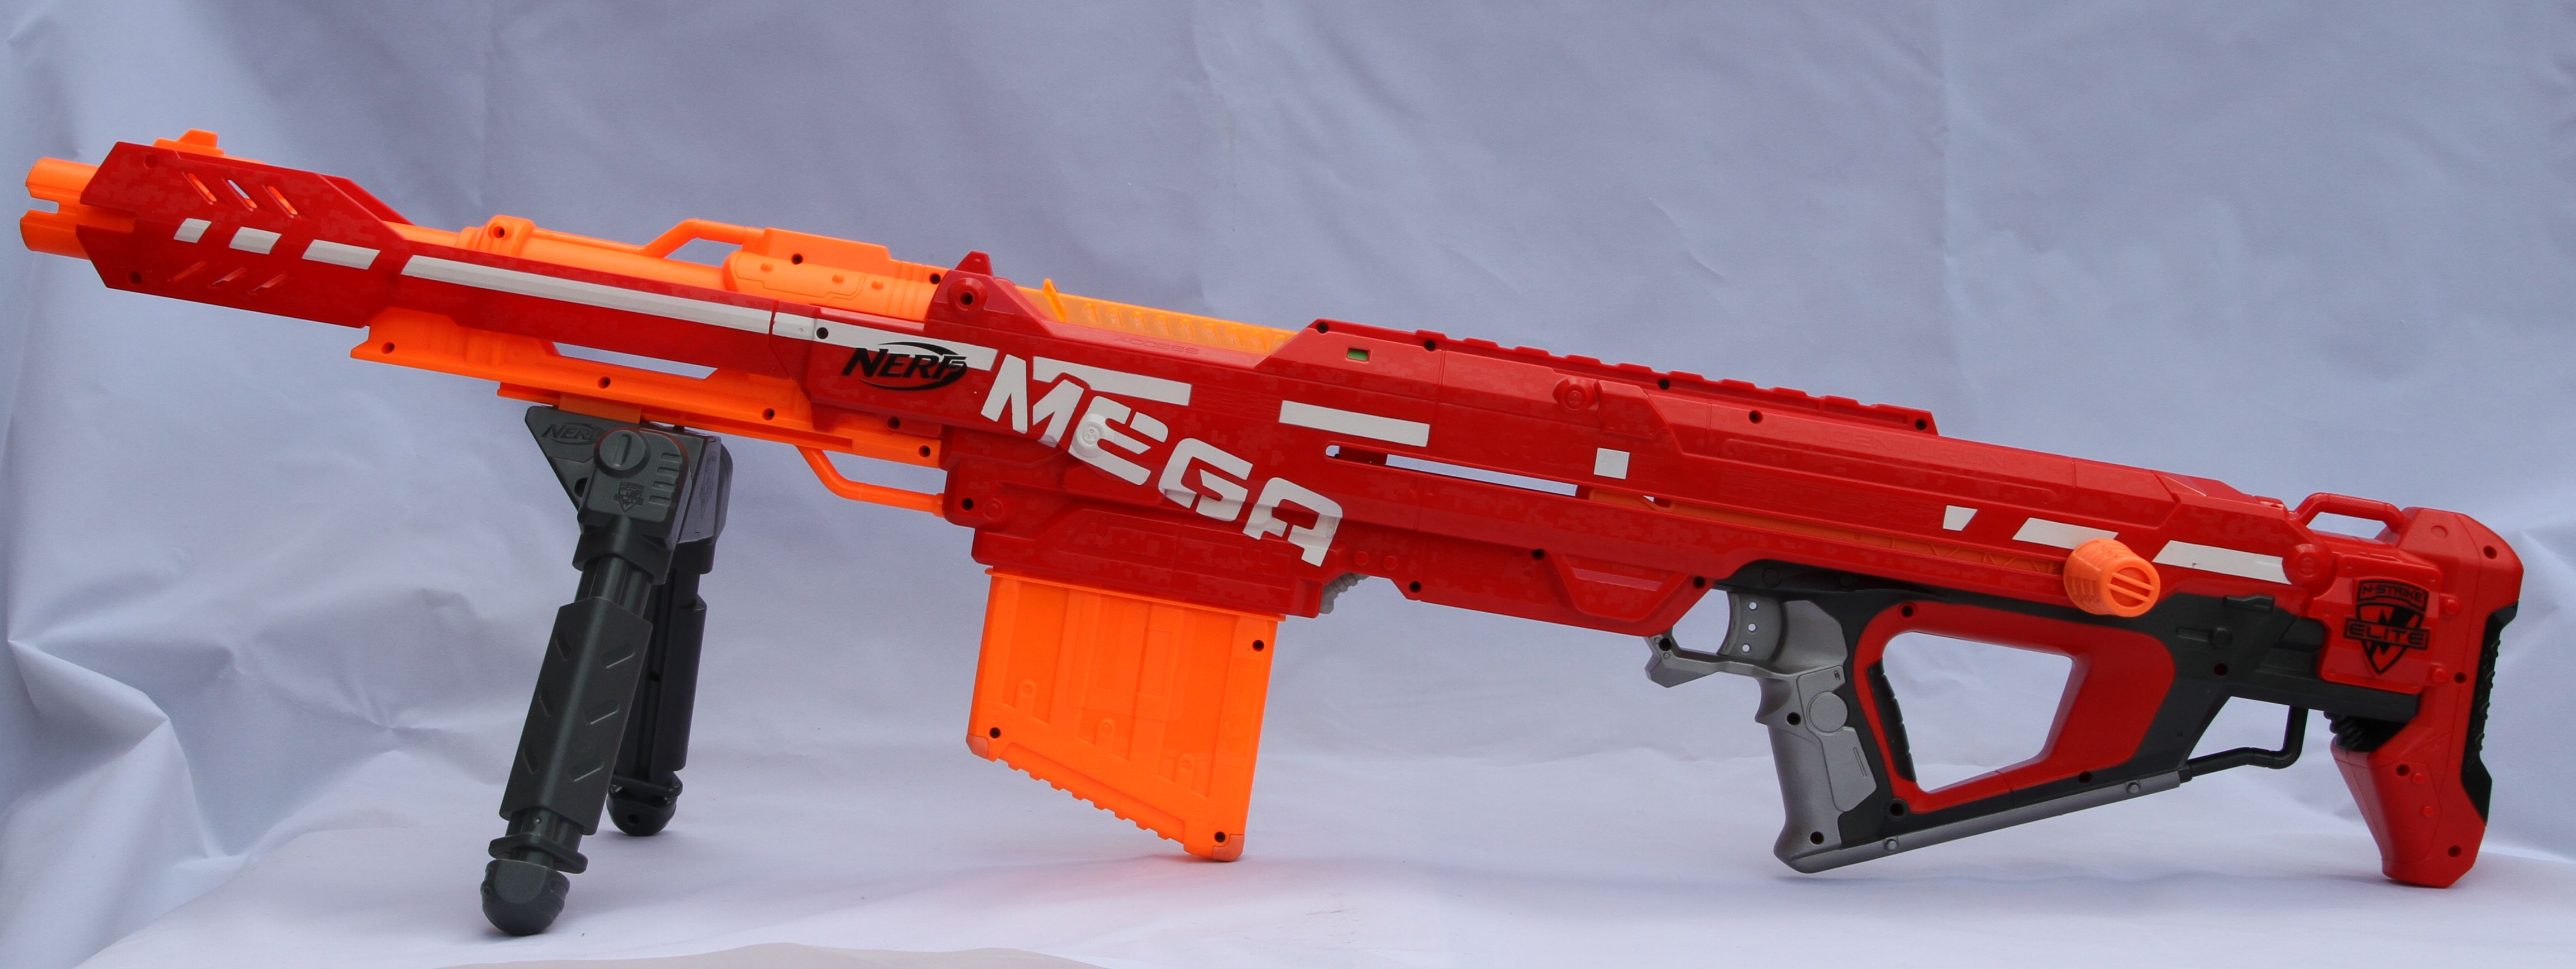 Nerf N-Strike Elite Mega Centurion Sniper Rifle With Bipod and Ammo ...